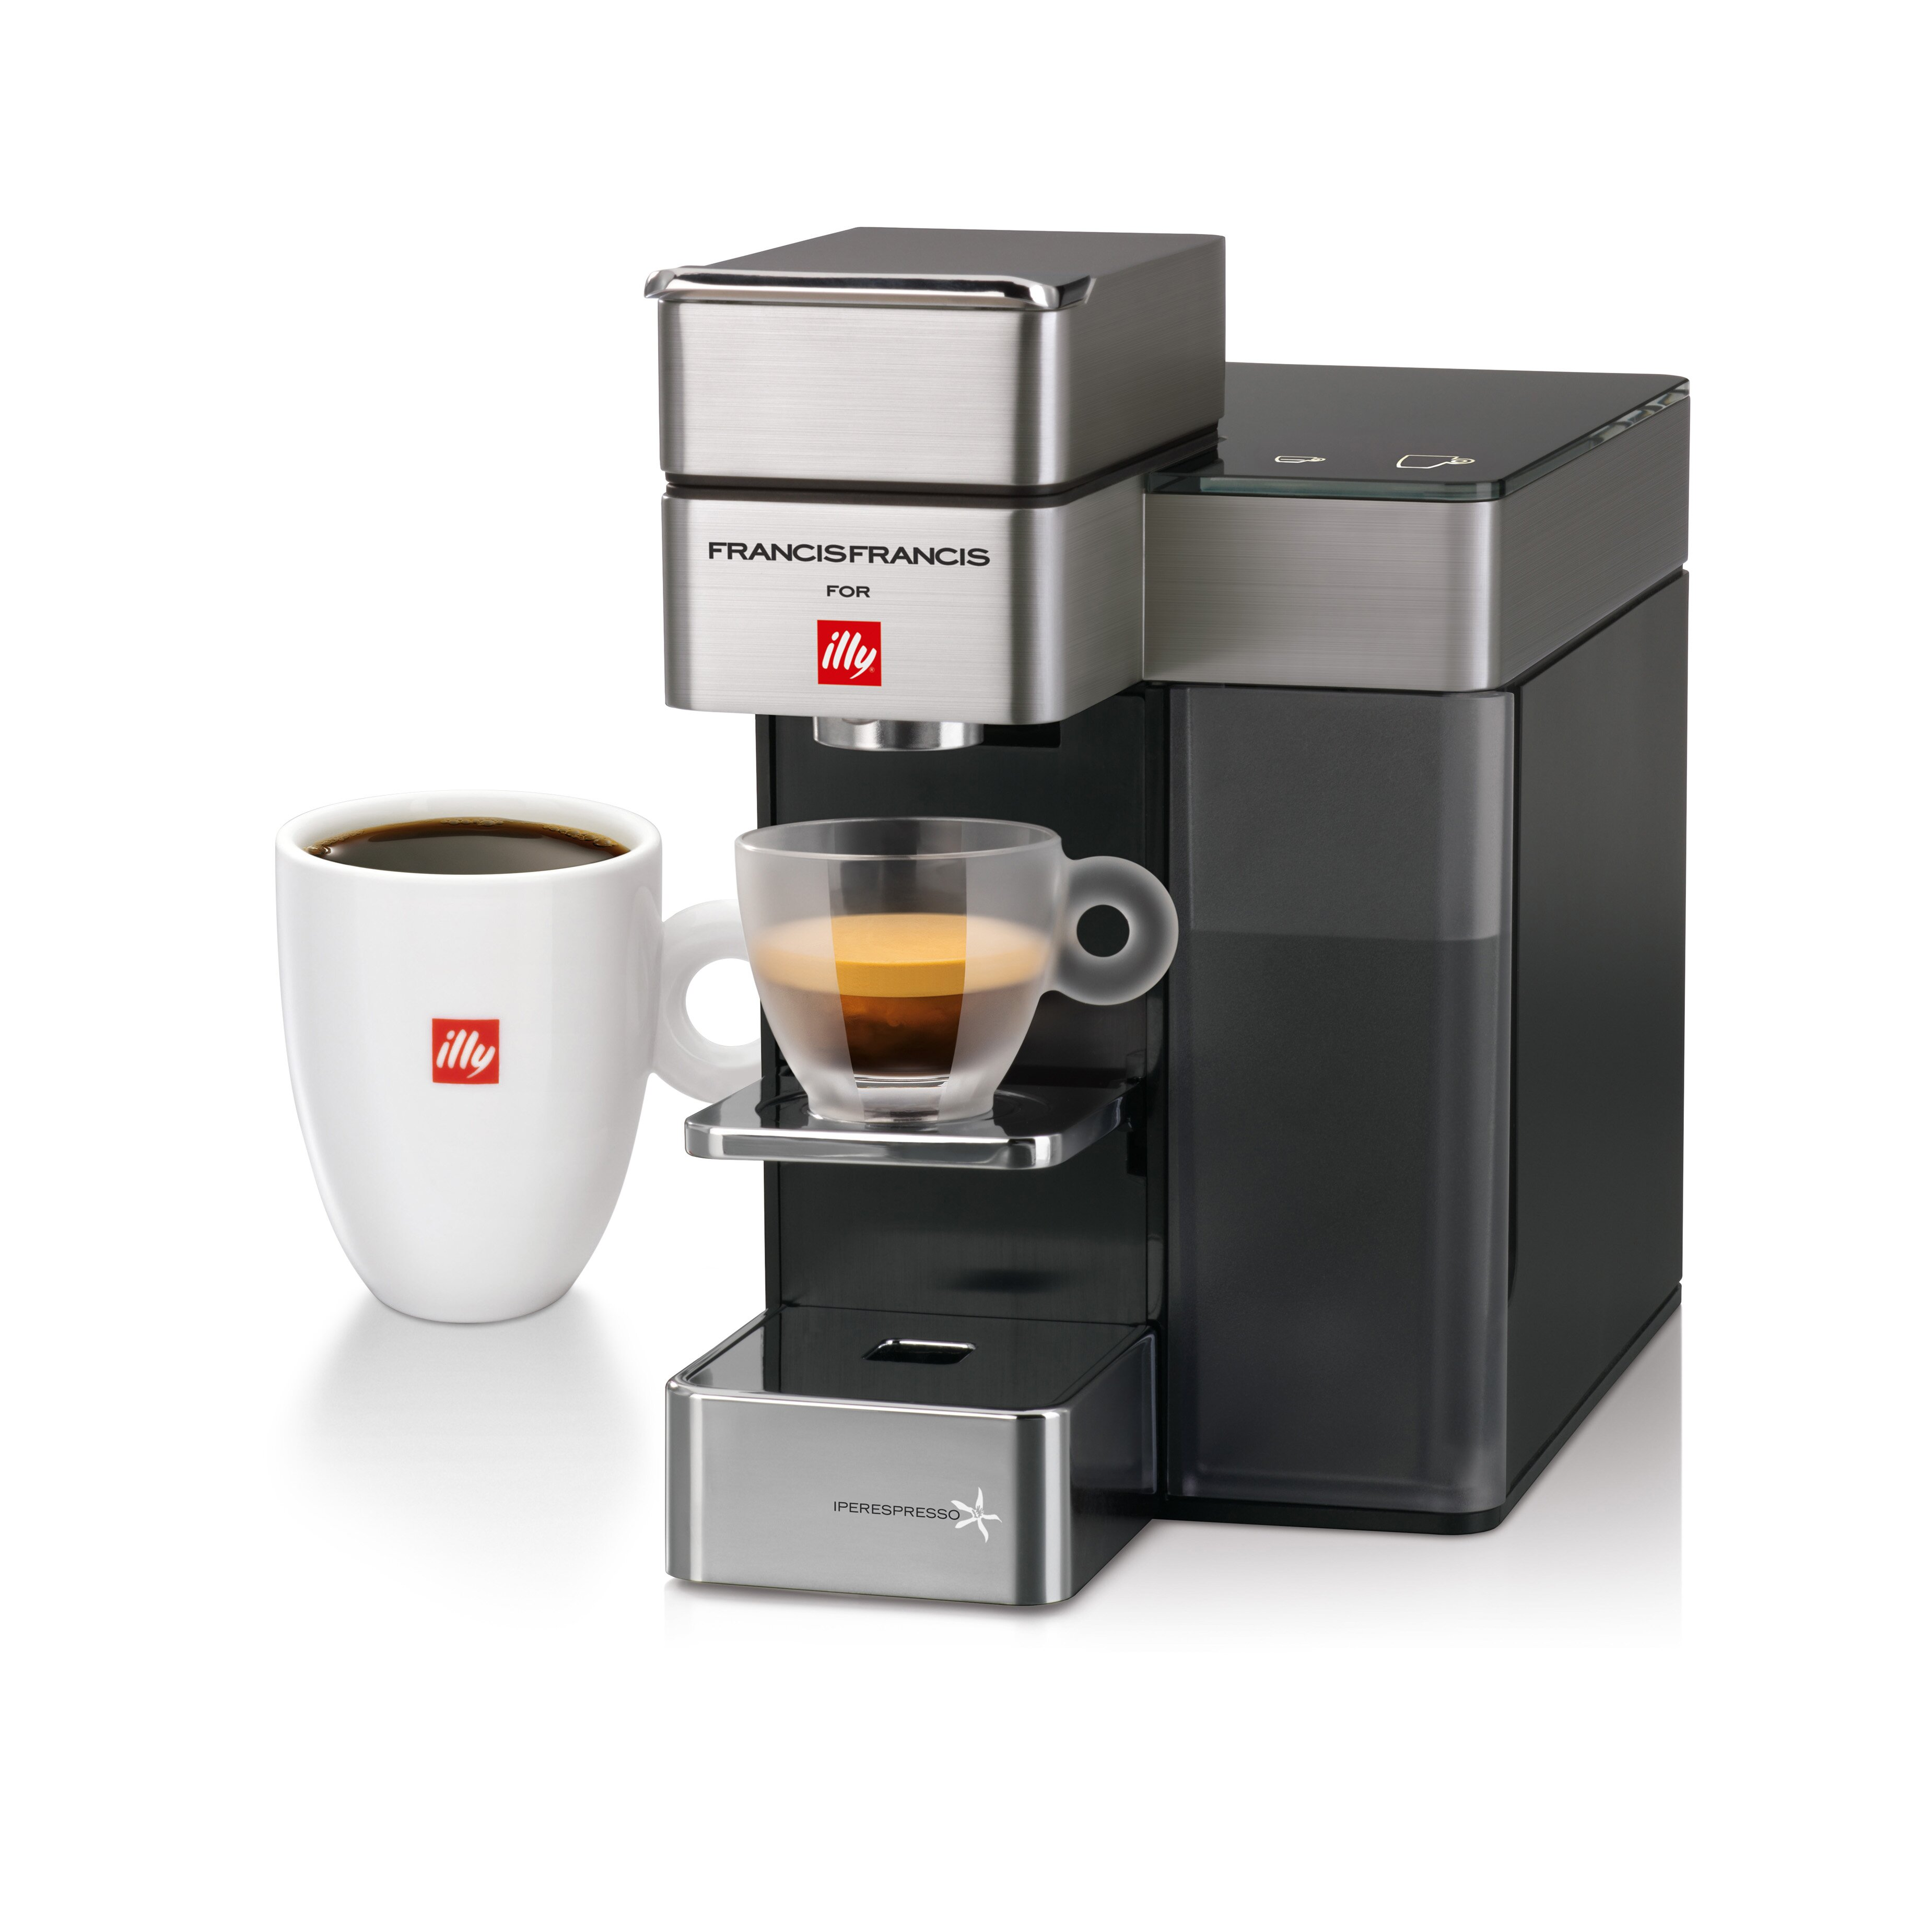 Illy Caffe & Espresso Francis Francis for illy Y5 Duo Espresso and Coffee Maker & Reviews Wayfair